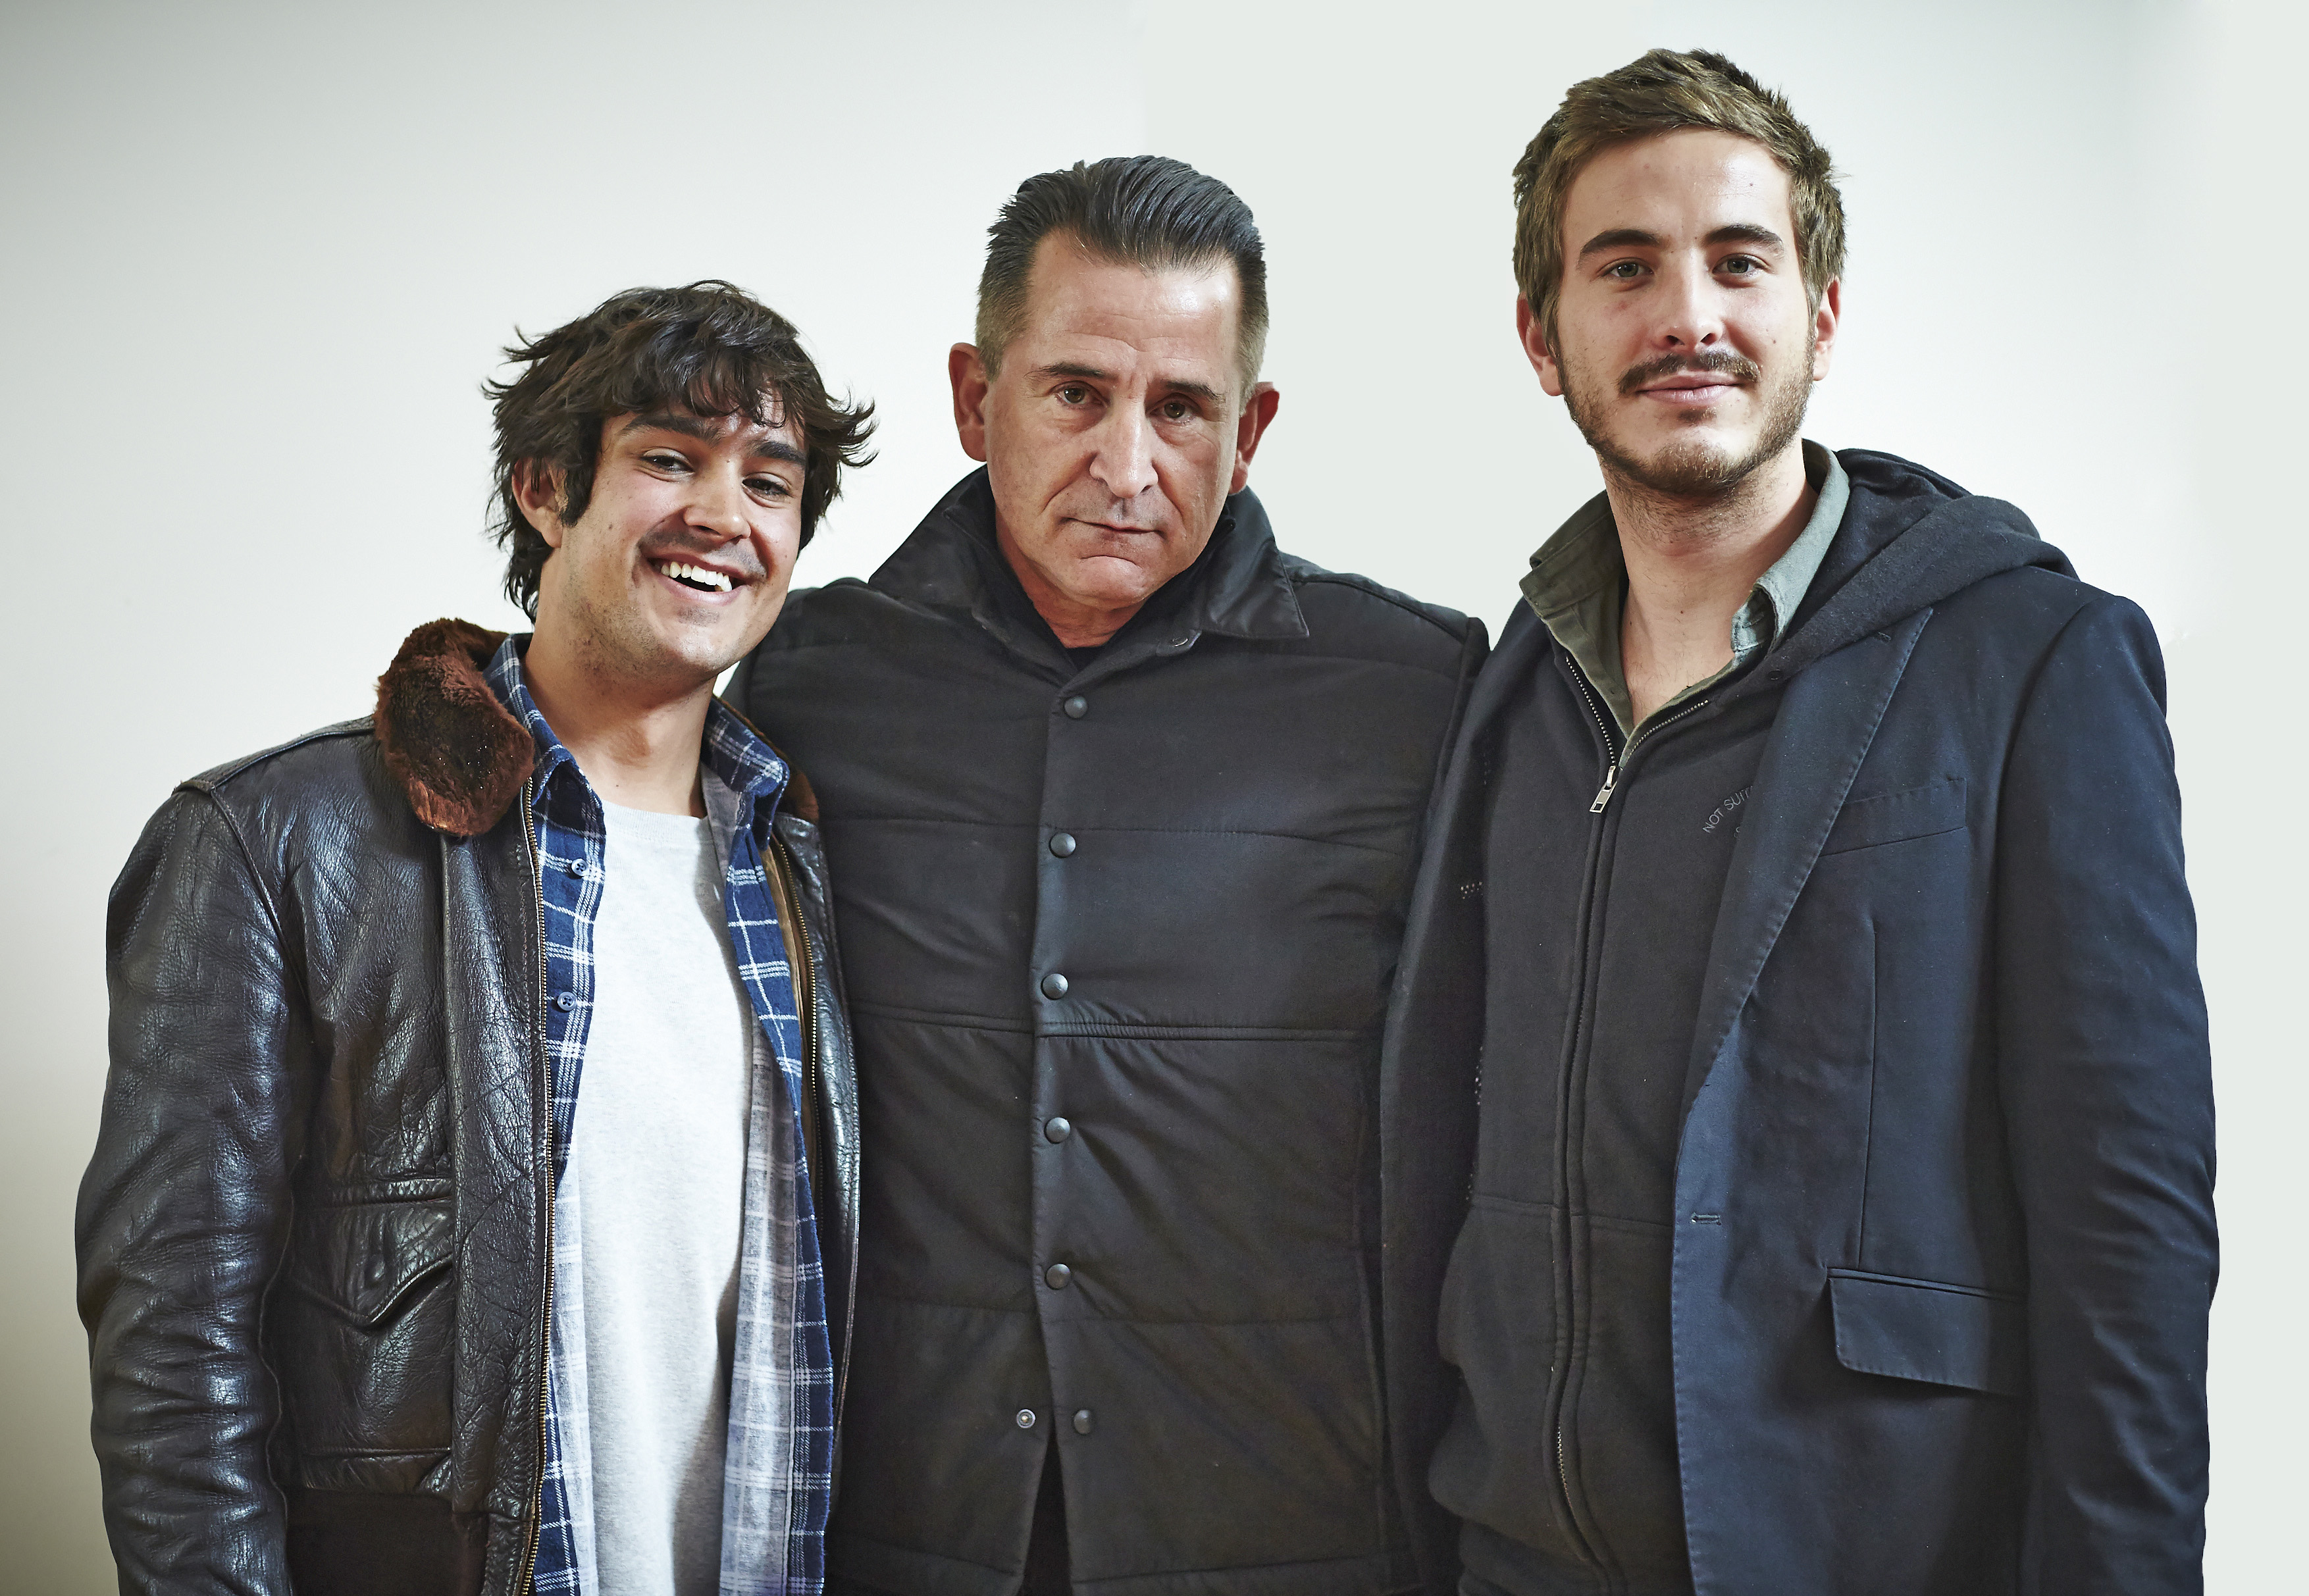 LaPaglia, Pearce set to shoot Holding The Man for director ...